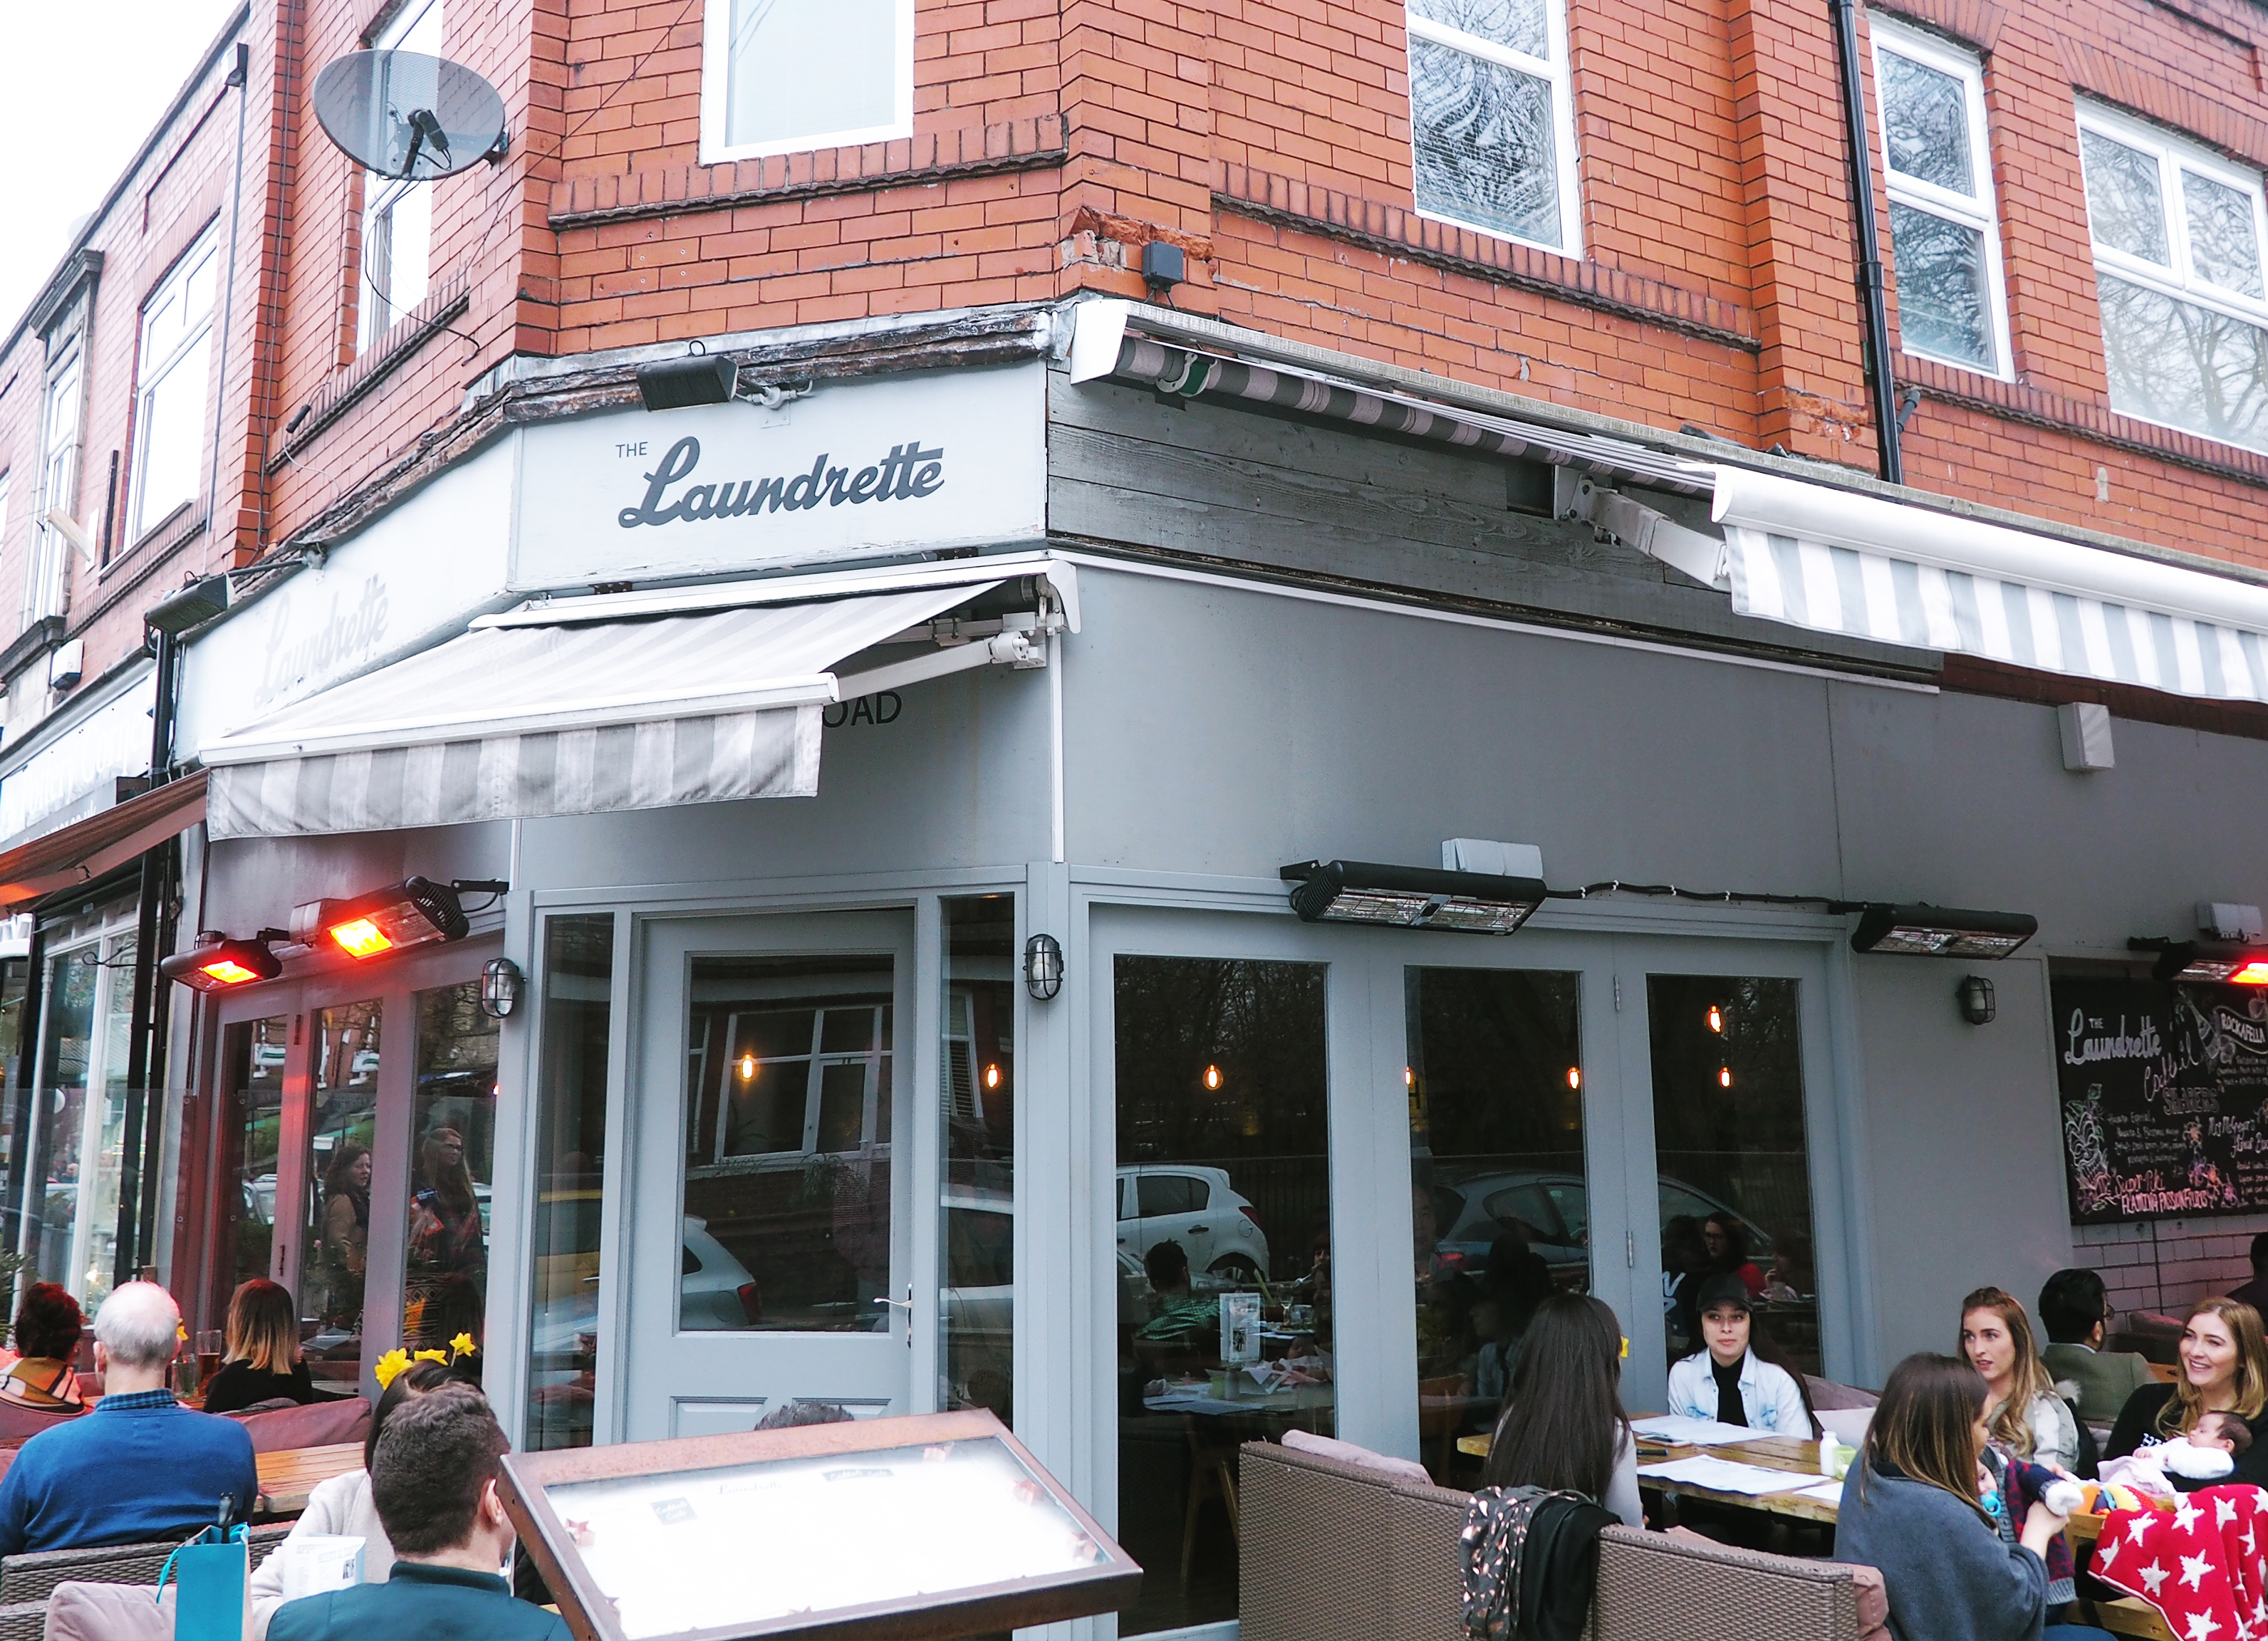 The Laundrette chorlton green manchester - quirky restaurant review